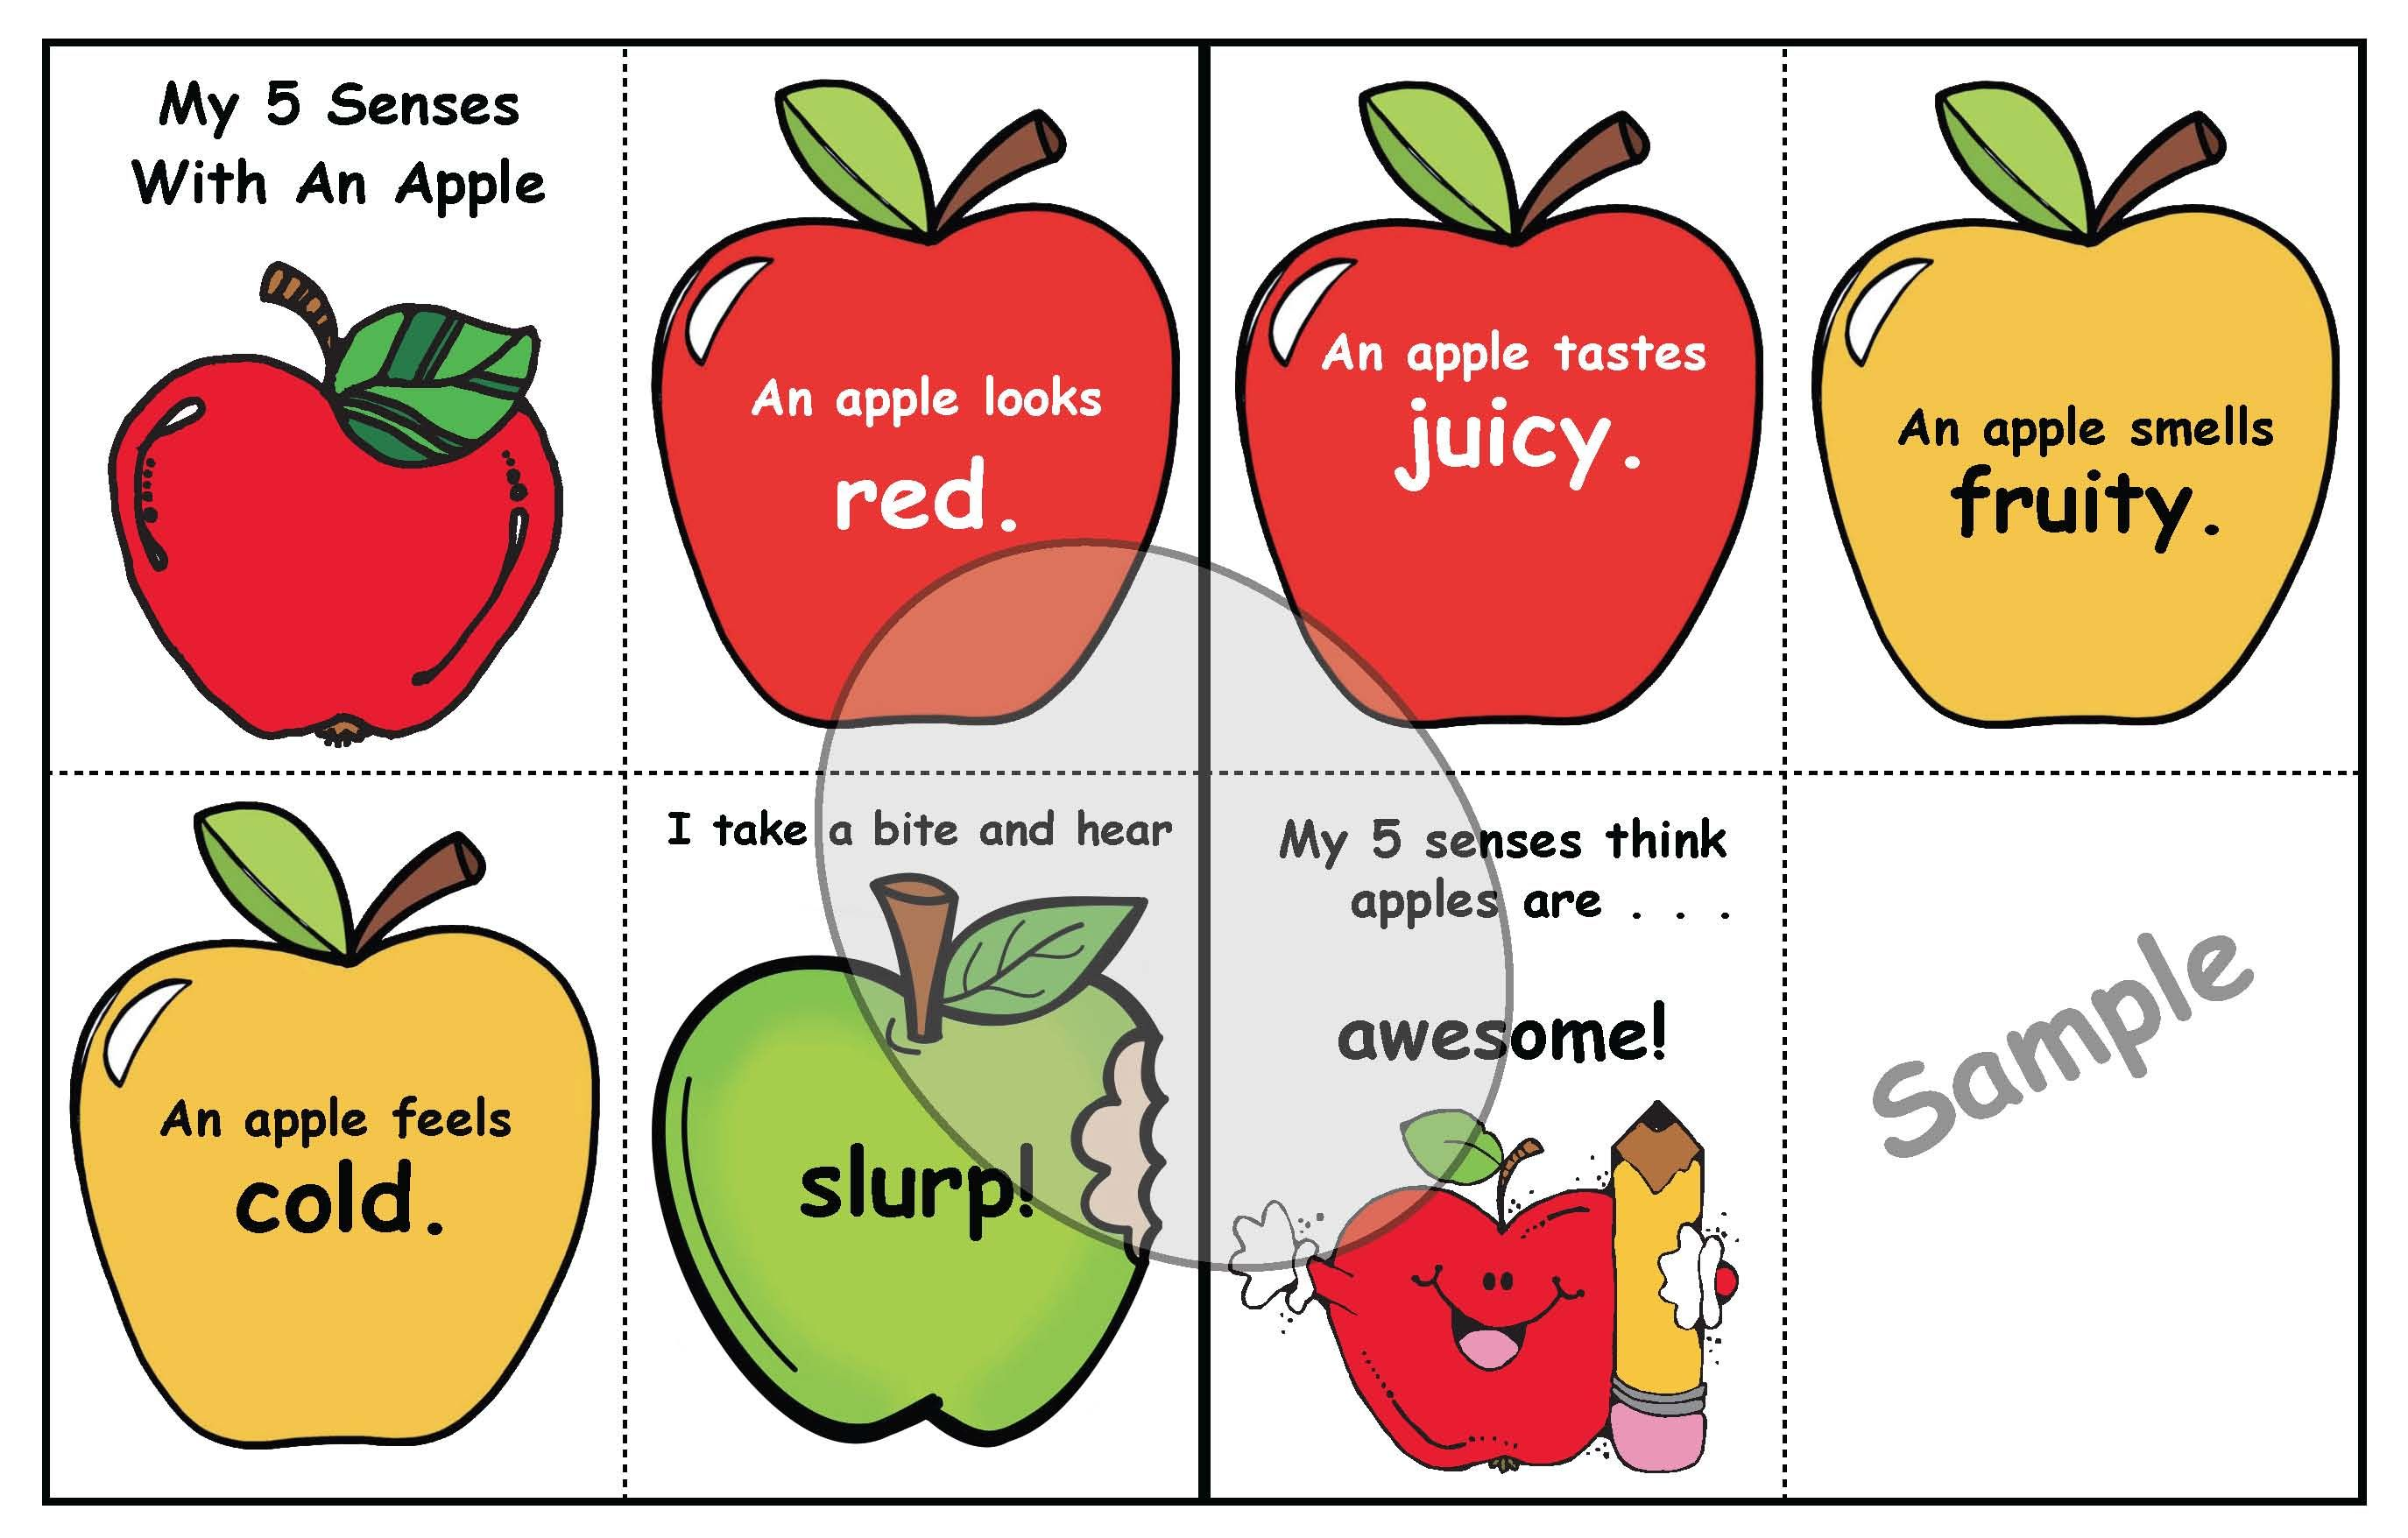 Studying The 5 Senses With Apples